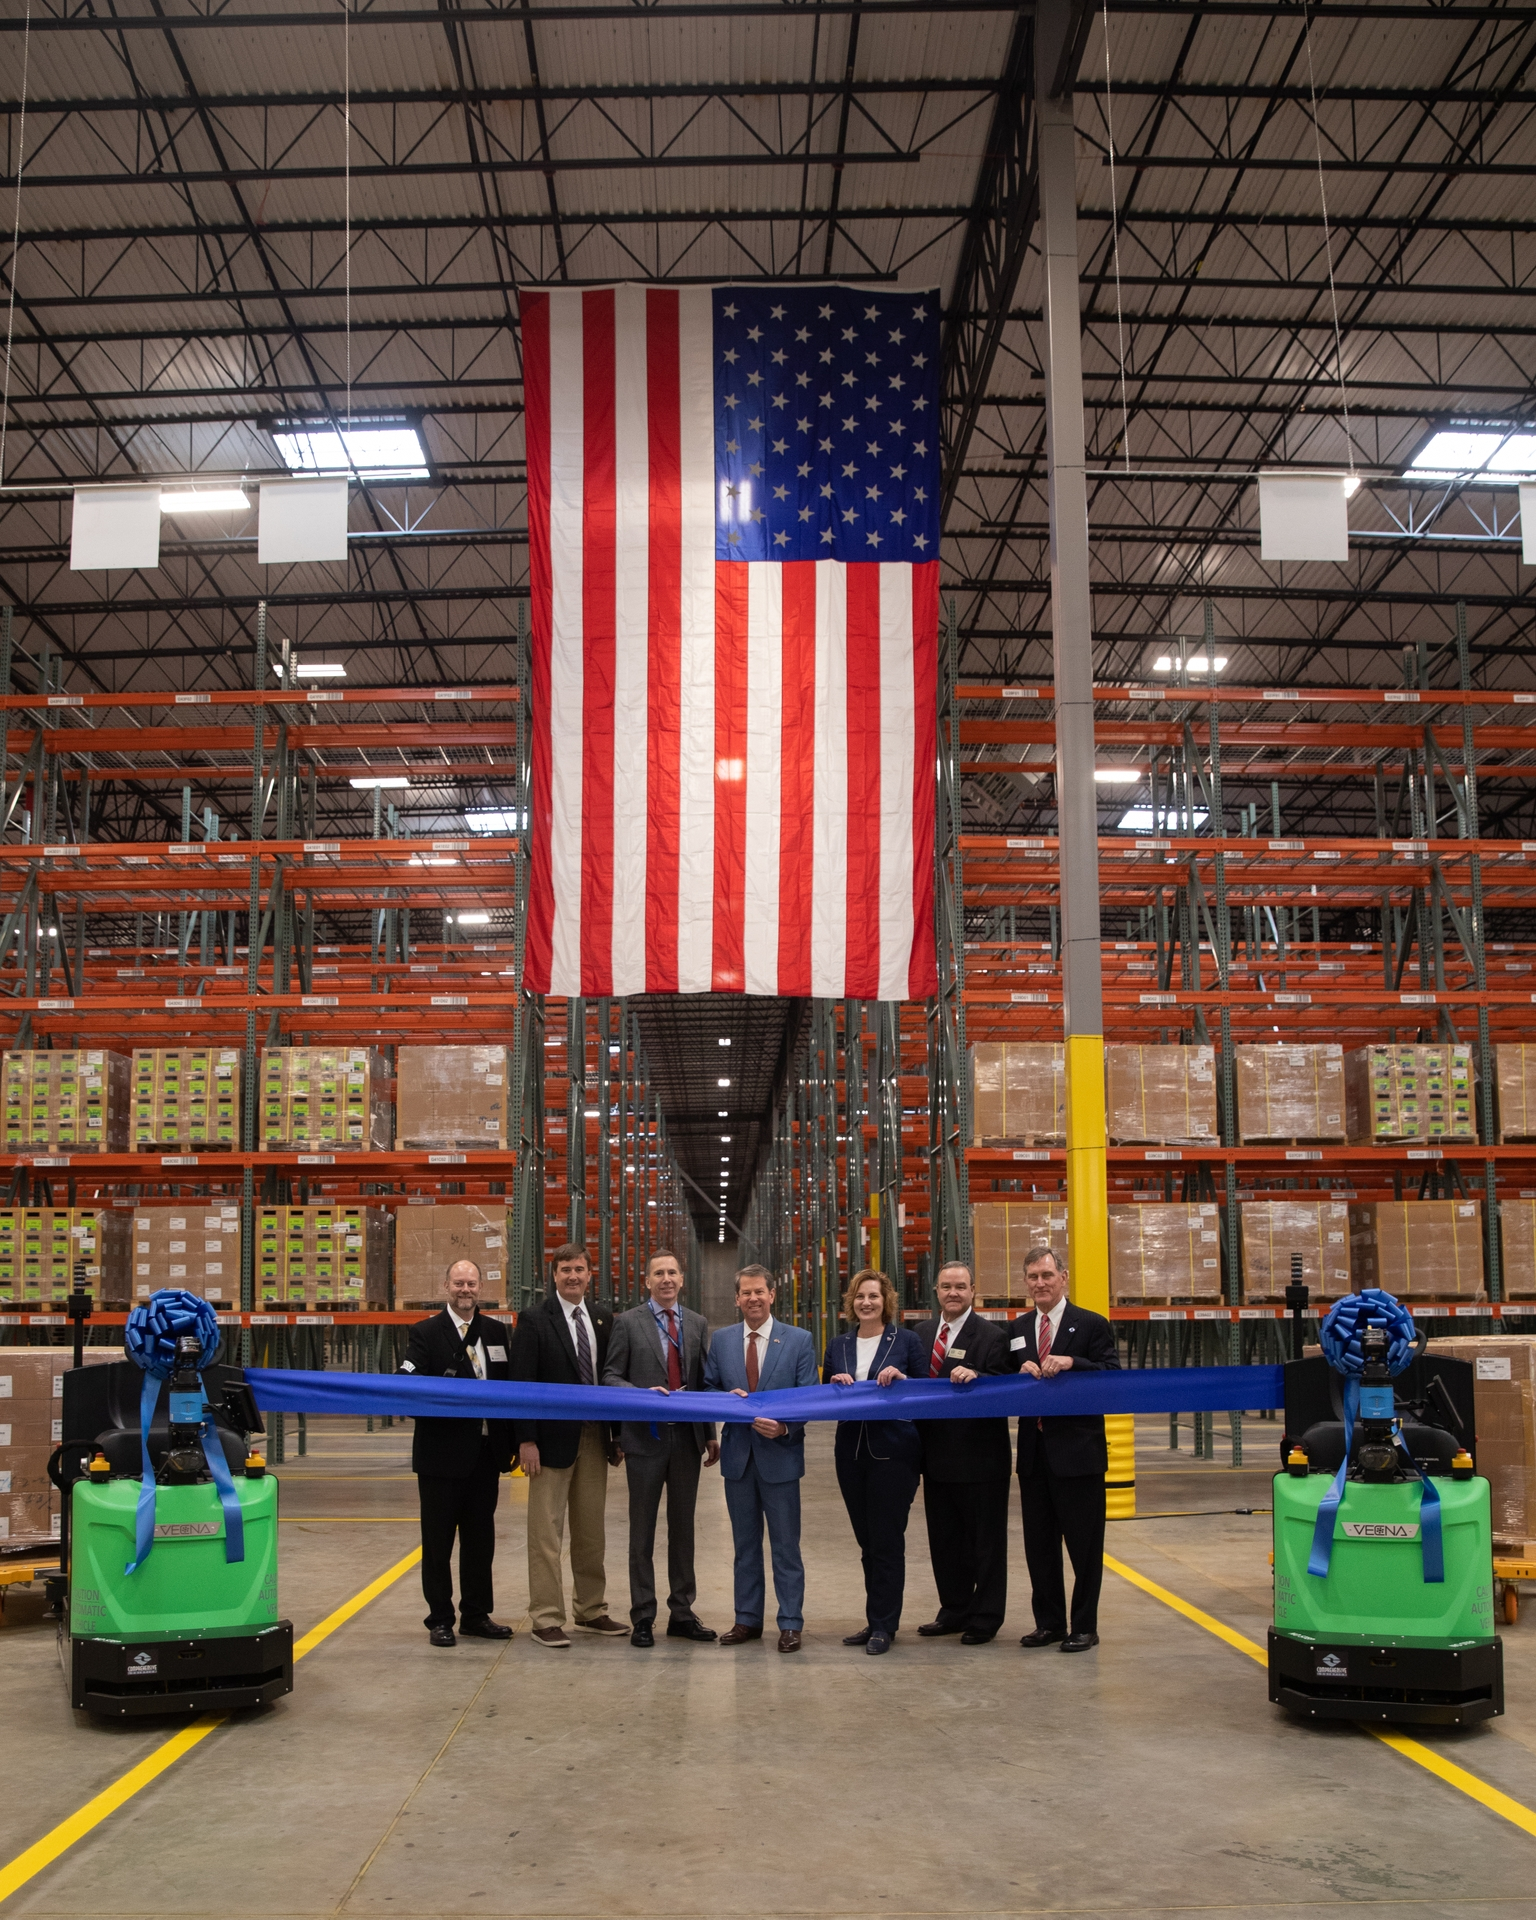 Gov Kemp and GEA officials open the Southern Logistics Center